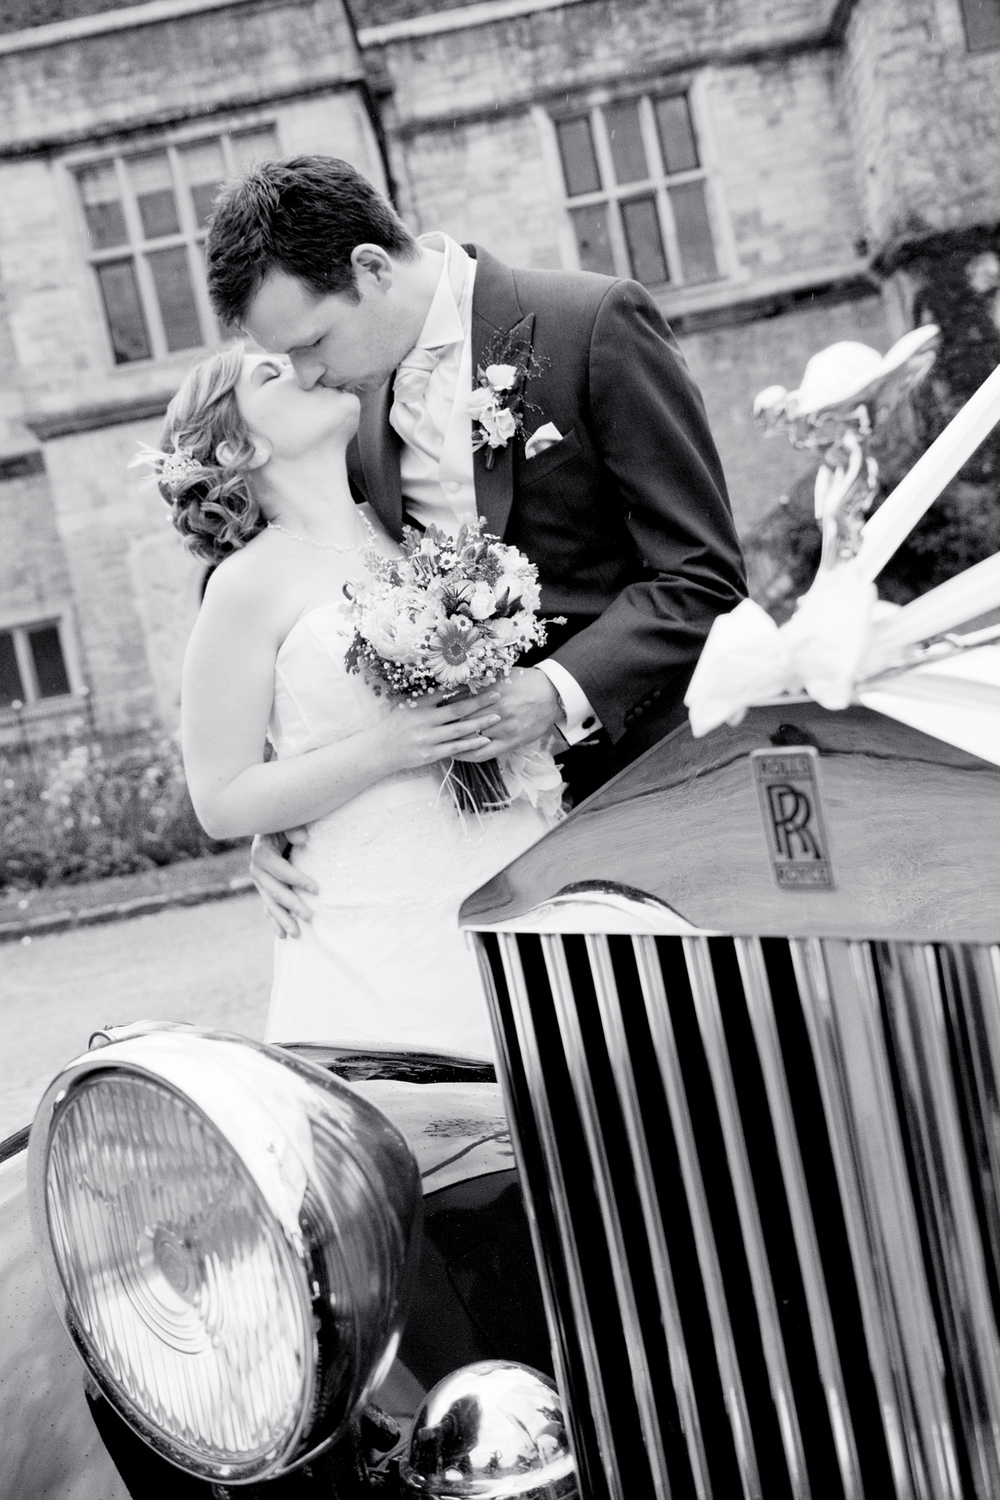 Rolls Royce Wedding Car, Helen England Photography, Kent, U.K